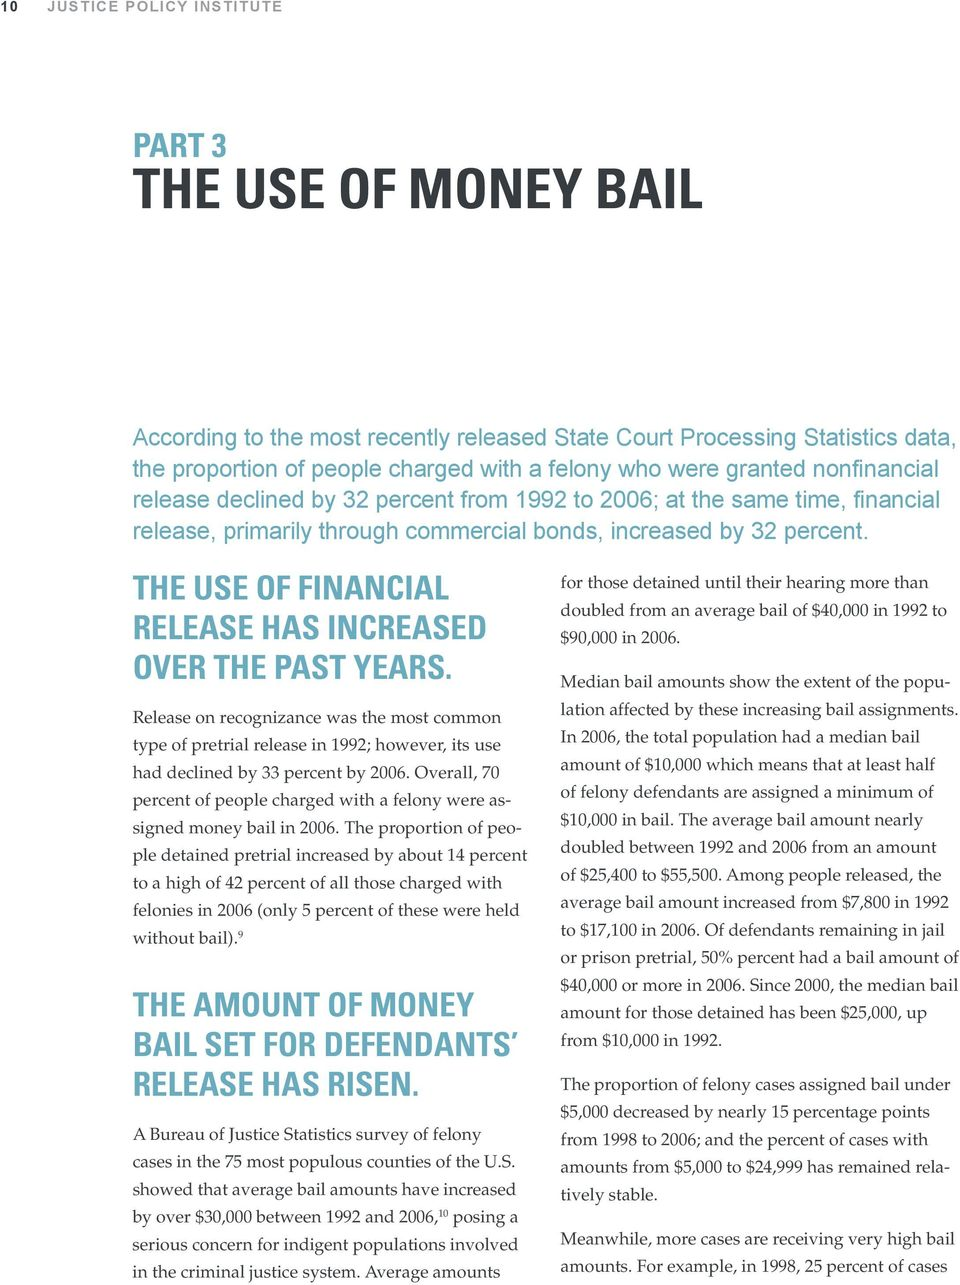 The use of financial release has increased over the PASt years. Release on recognizance was the most common type of pretrial release in 1992; however, its use had declined by 33 percent by 2006.